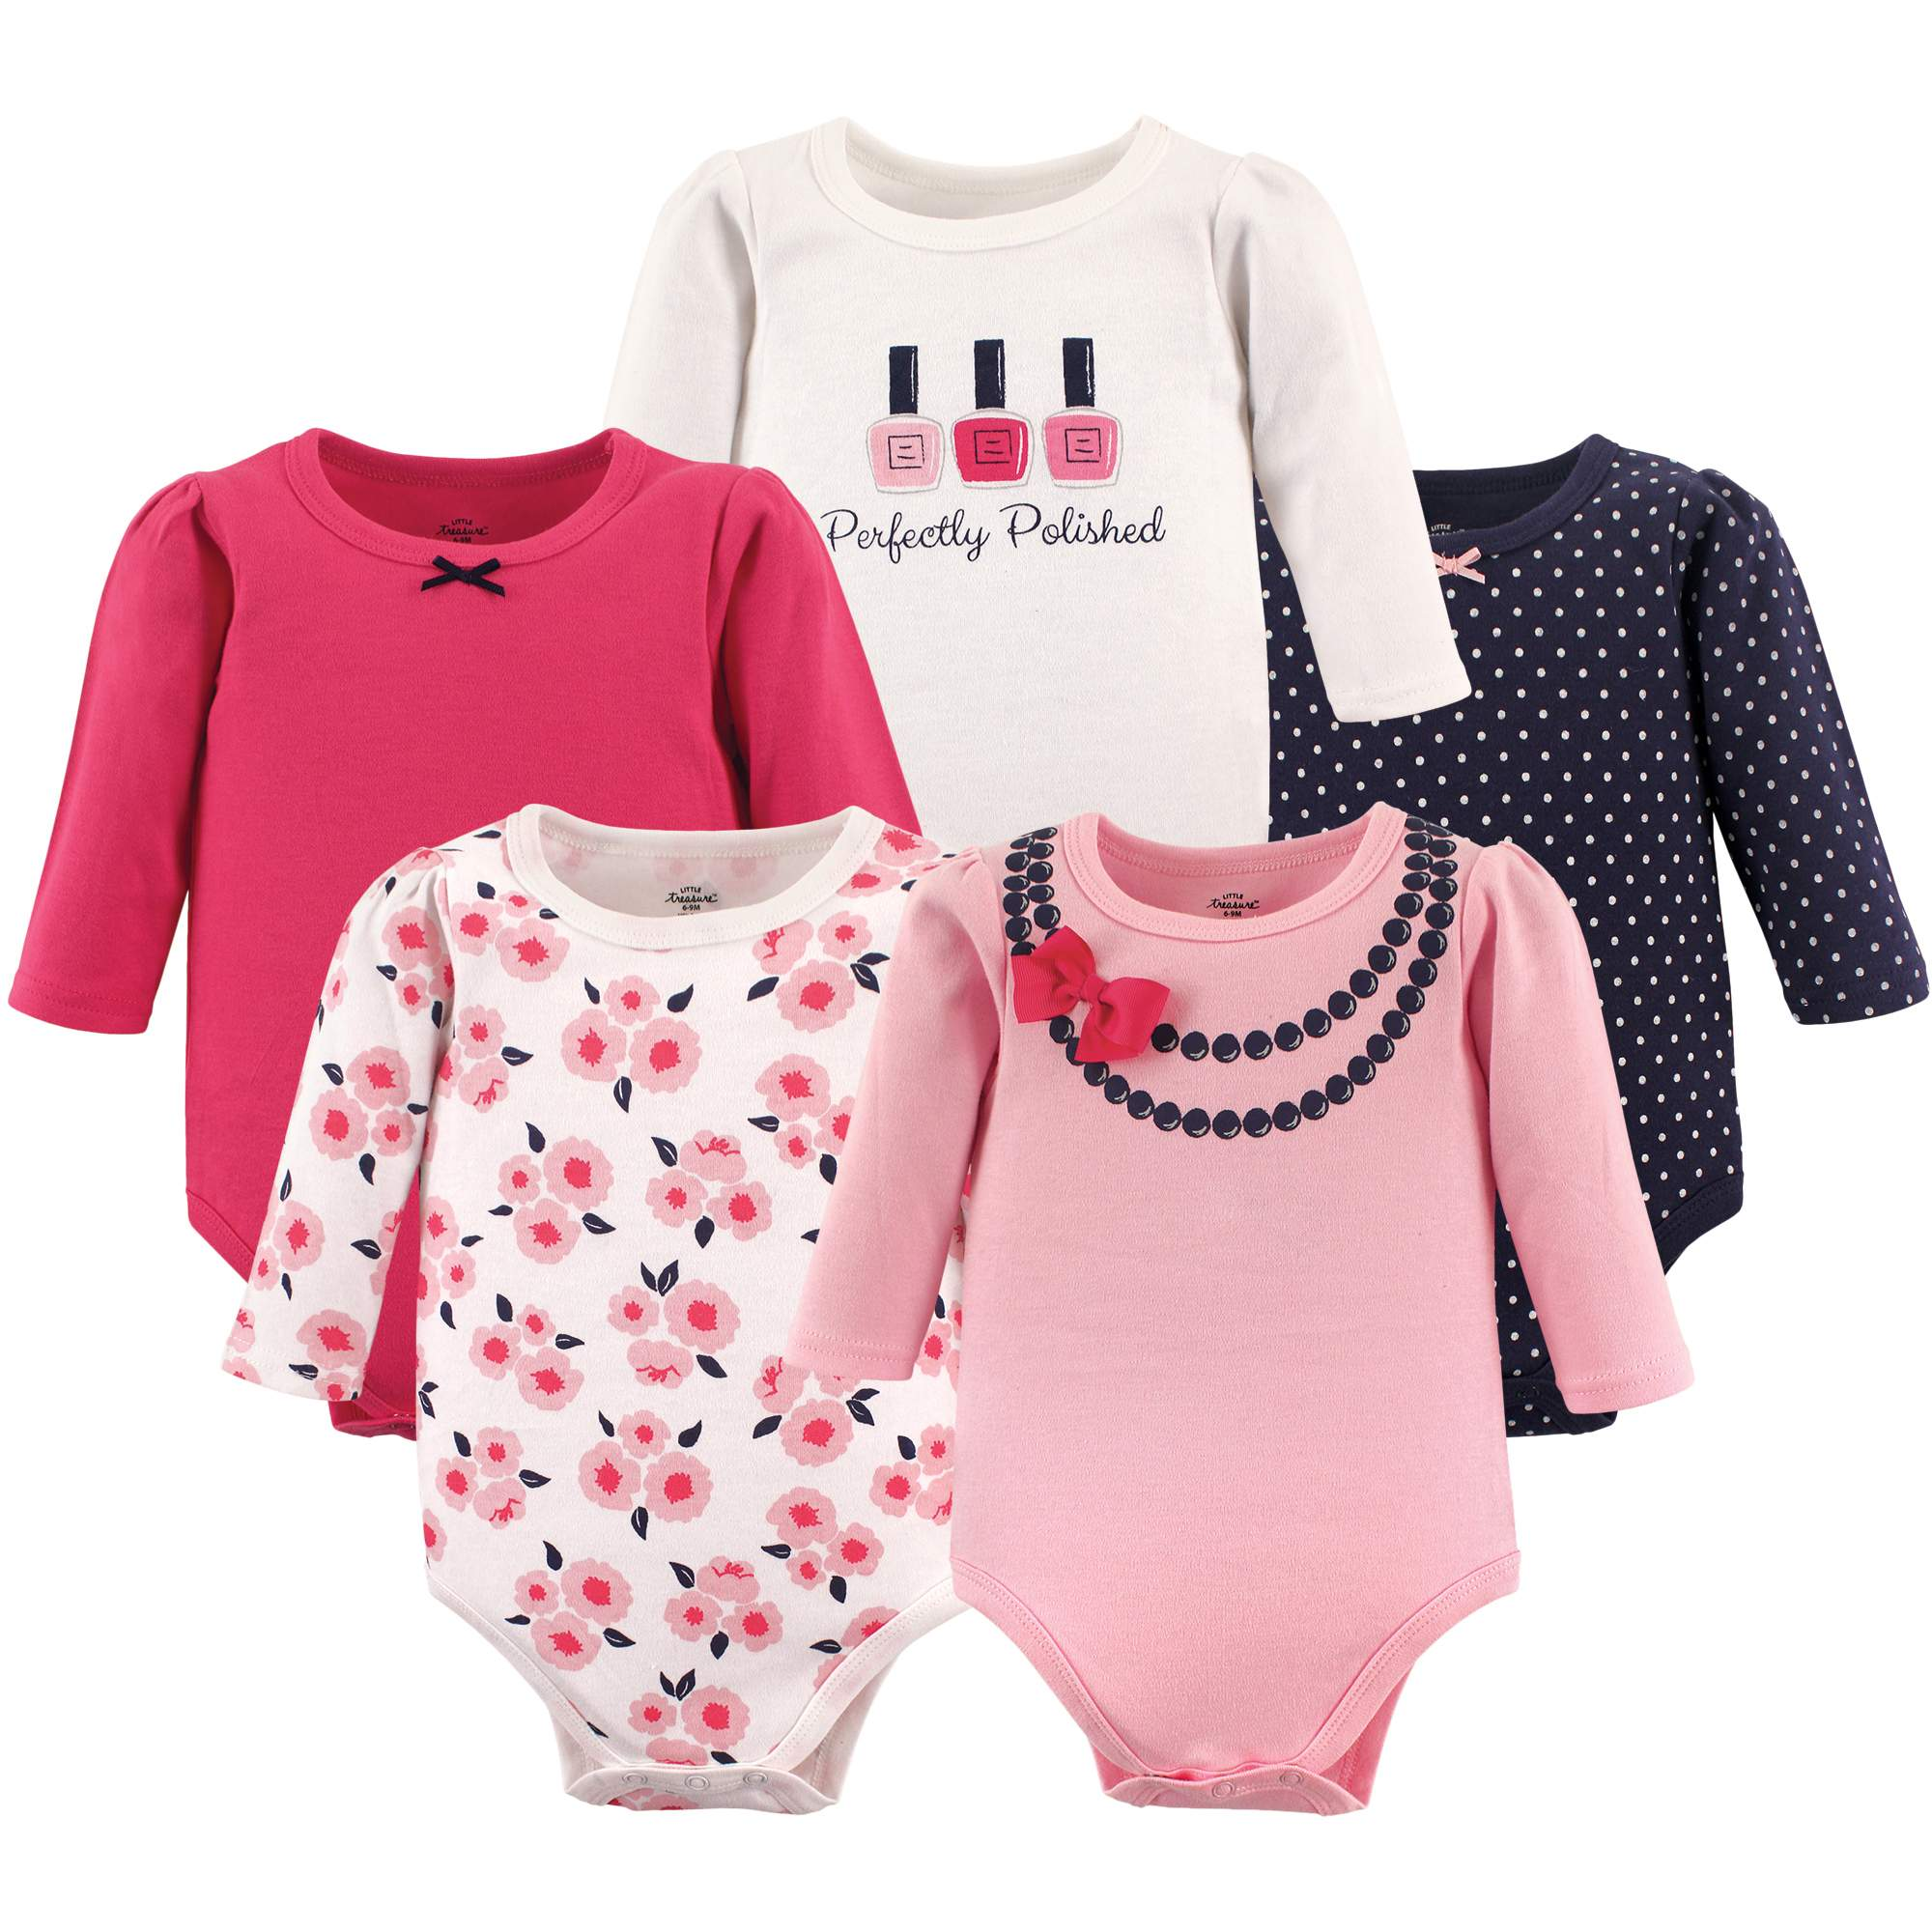 Little Treasure Baby Girl Long Sleeve Bodysuits, 5-pack